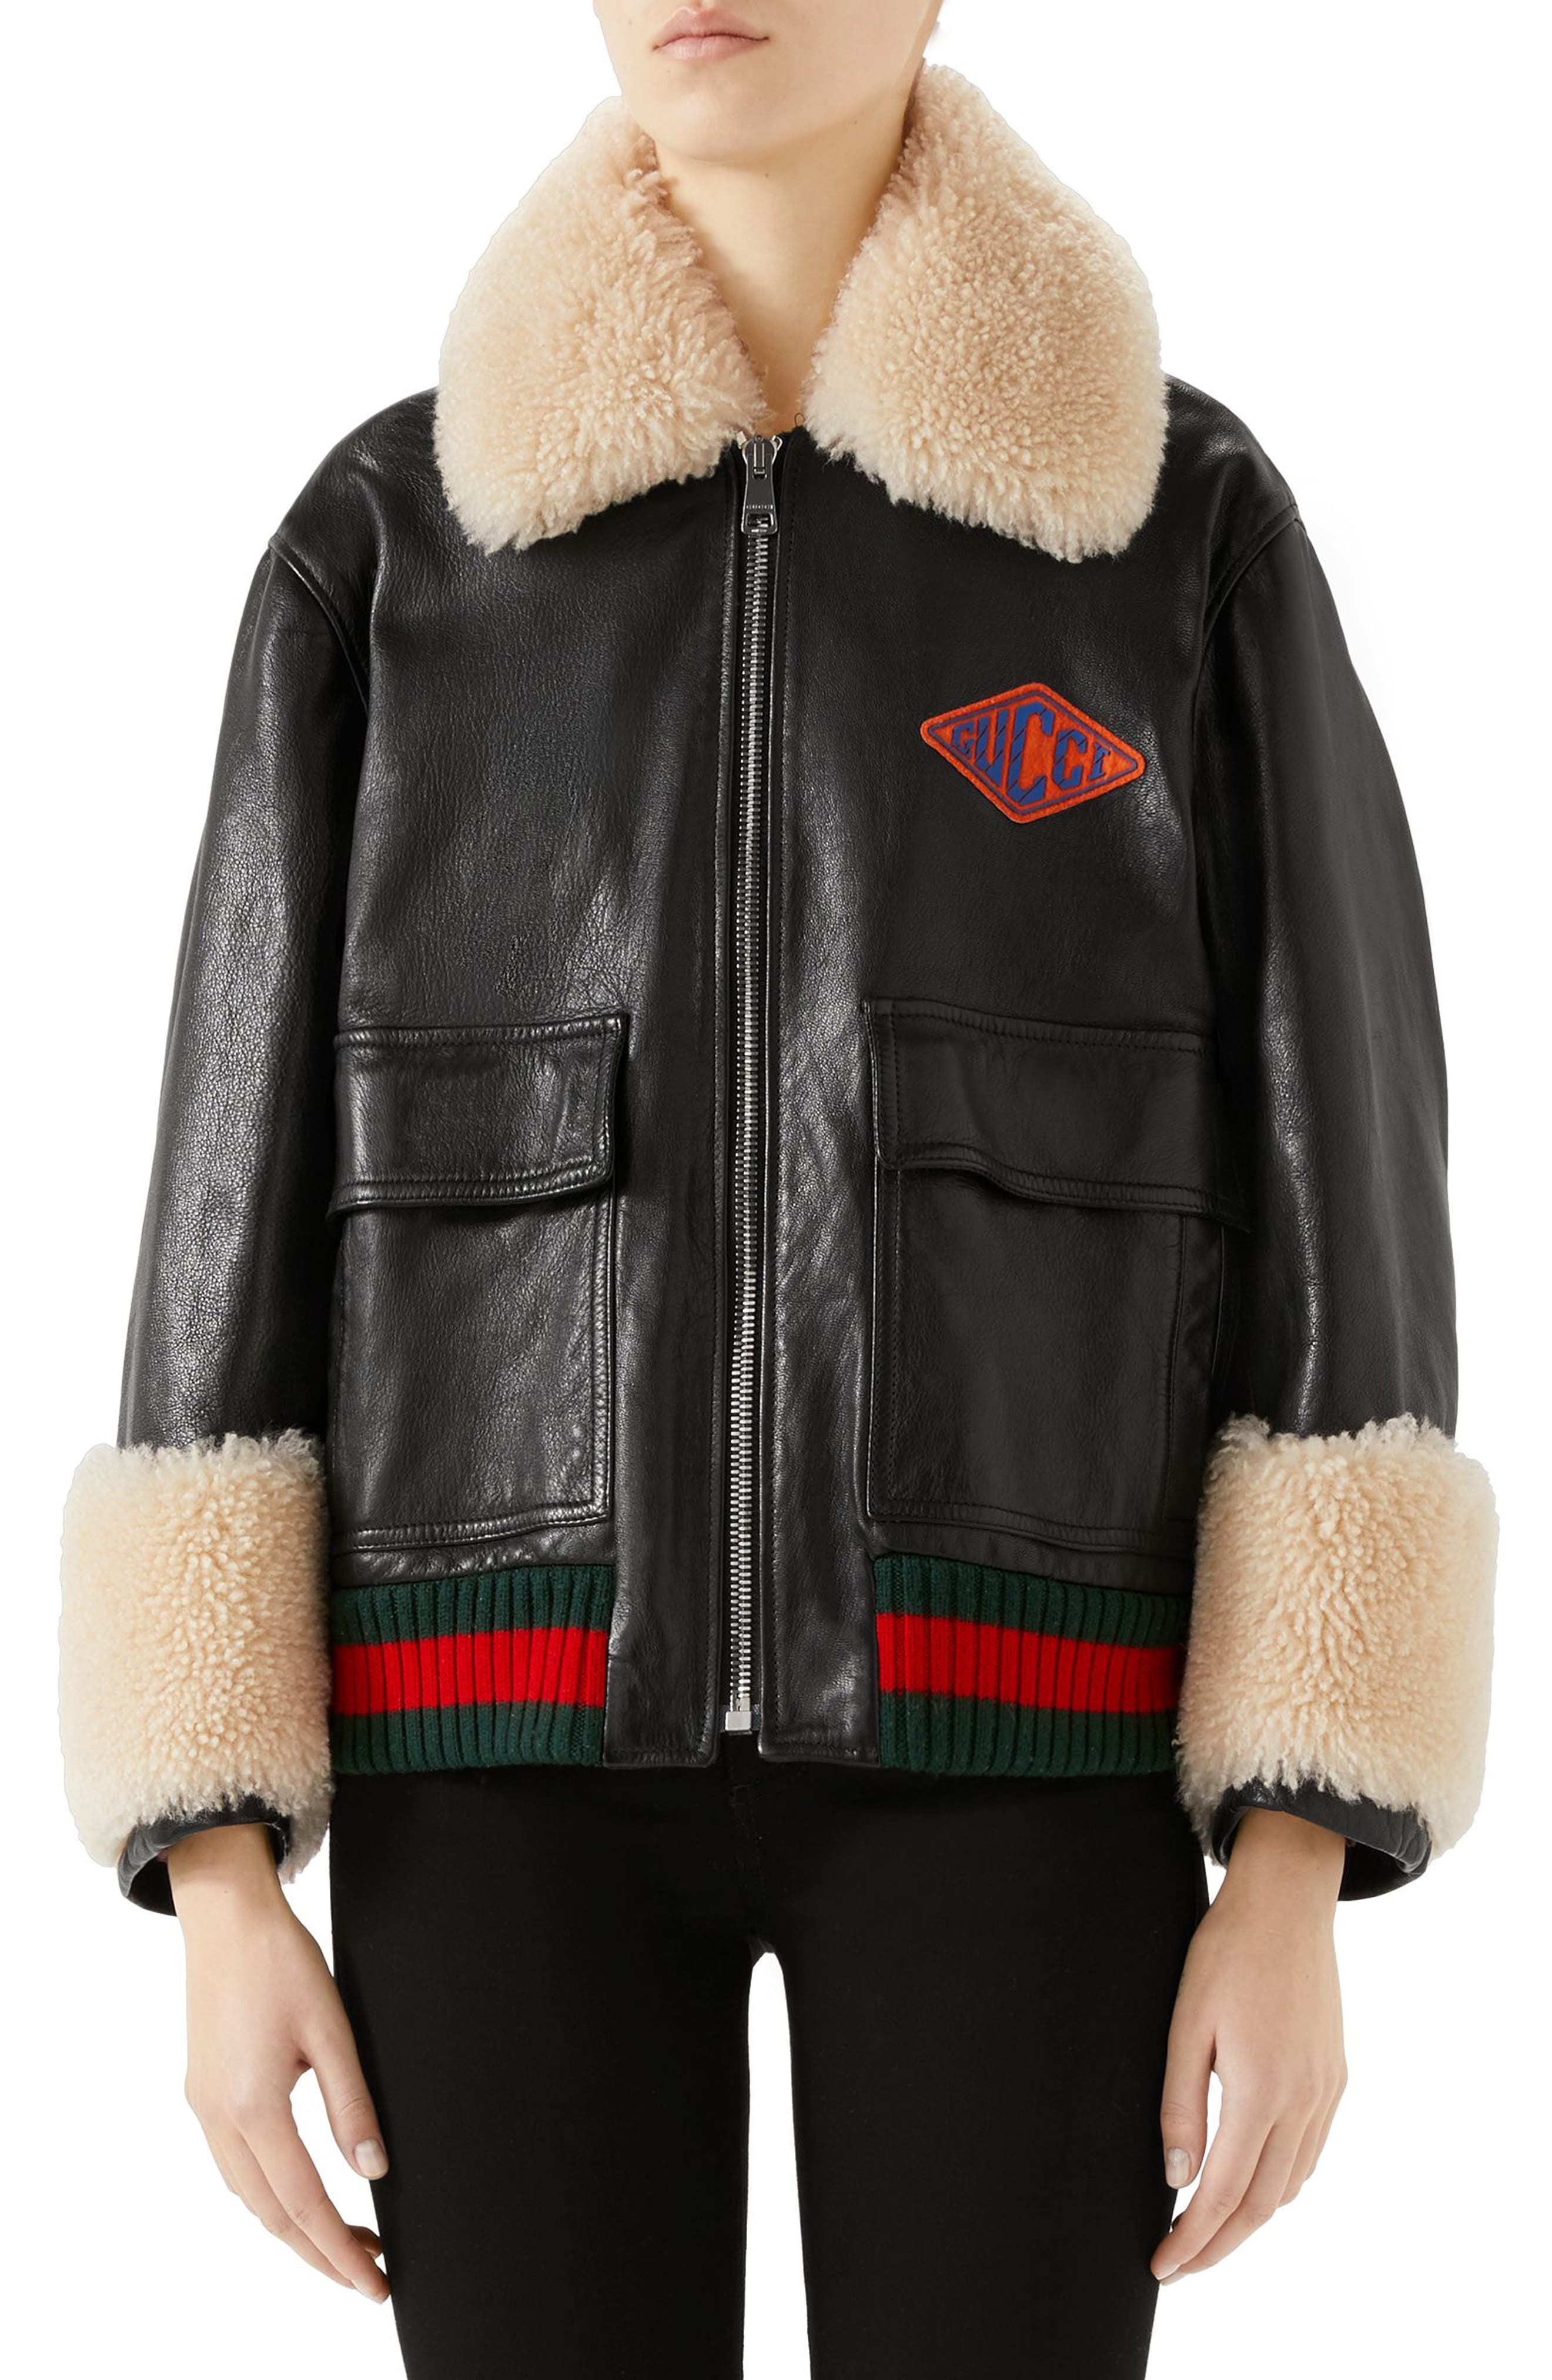 Gucci Genuine Shearling Trim Leather Bomber Jacket, 8 IT - Black